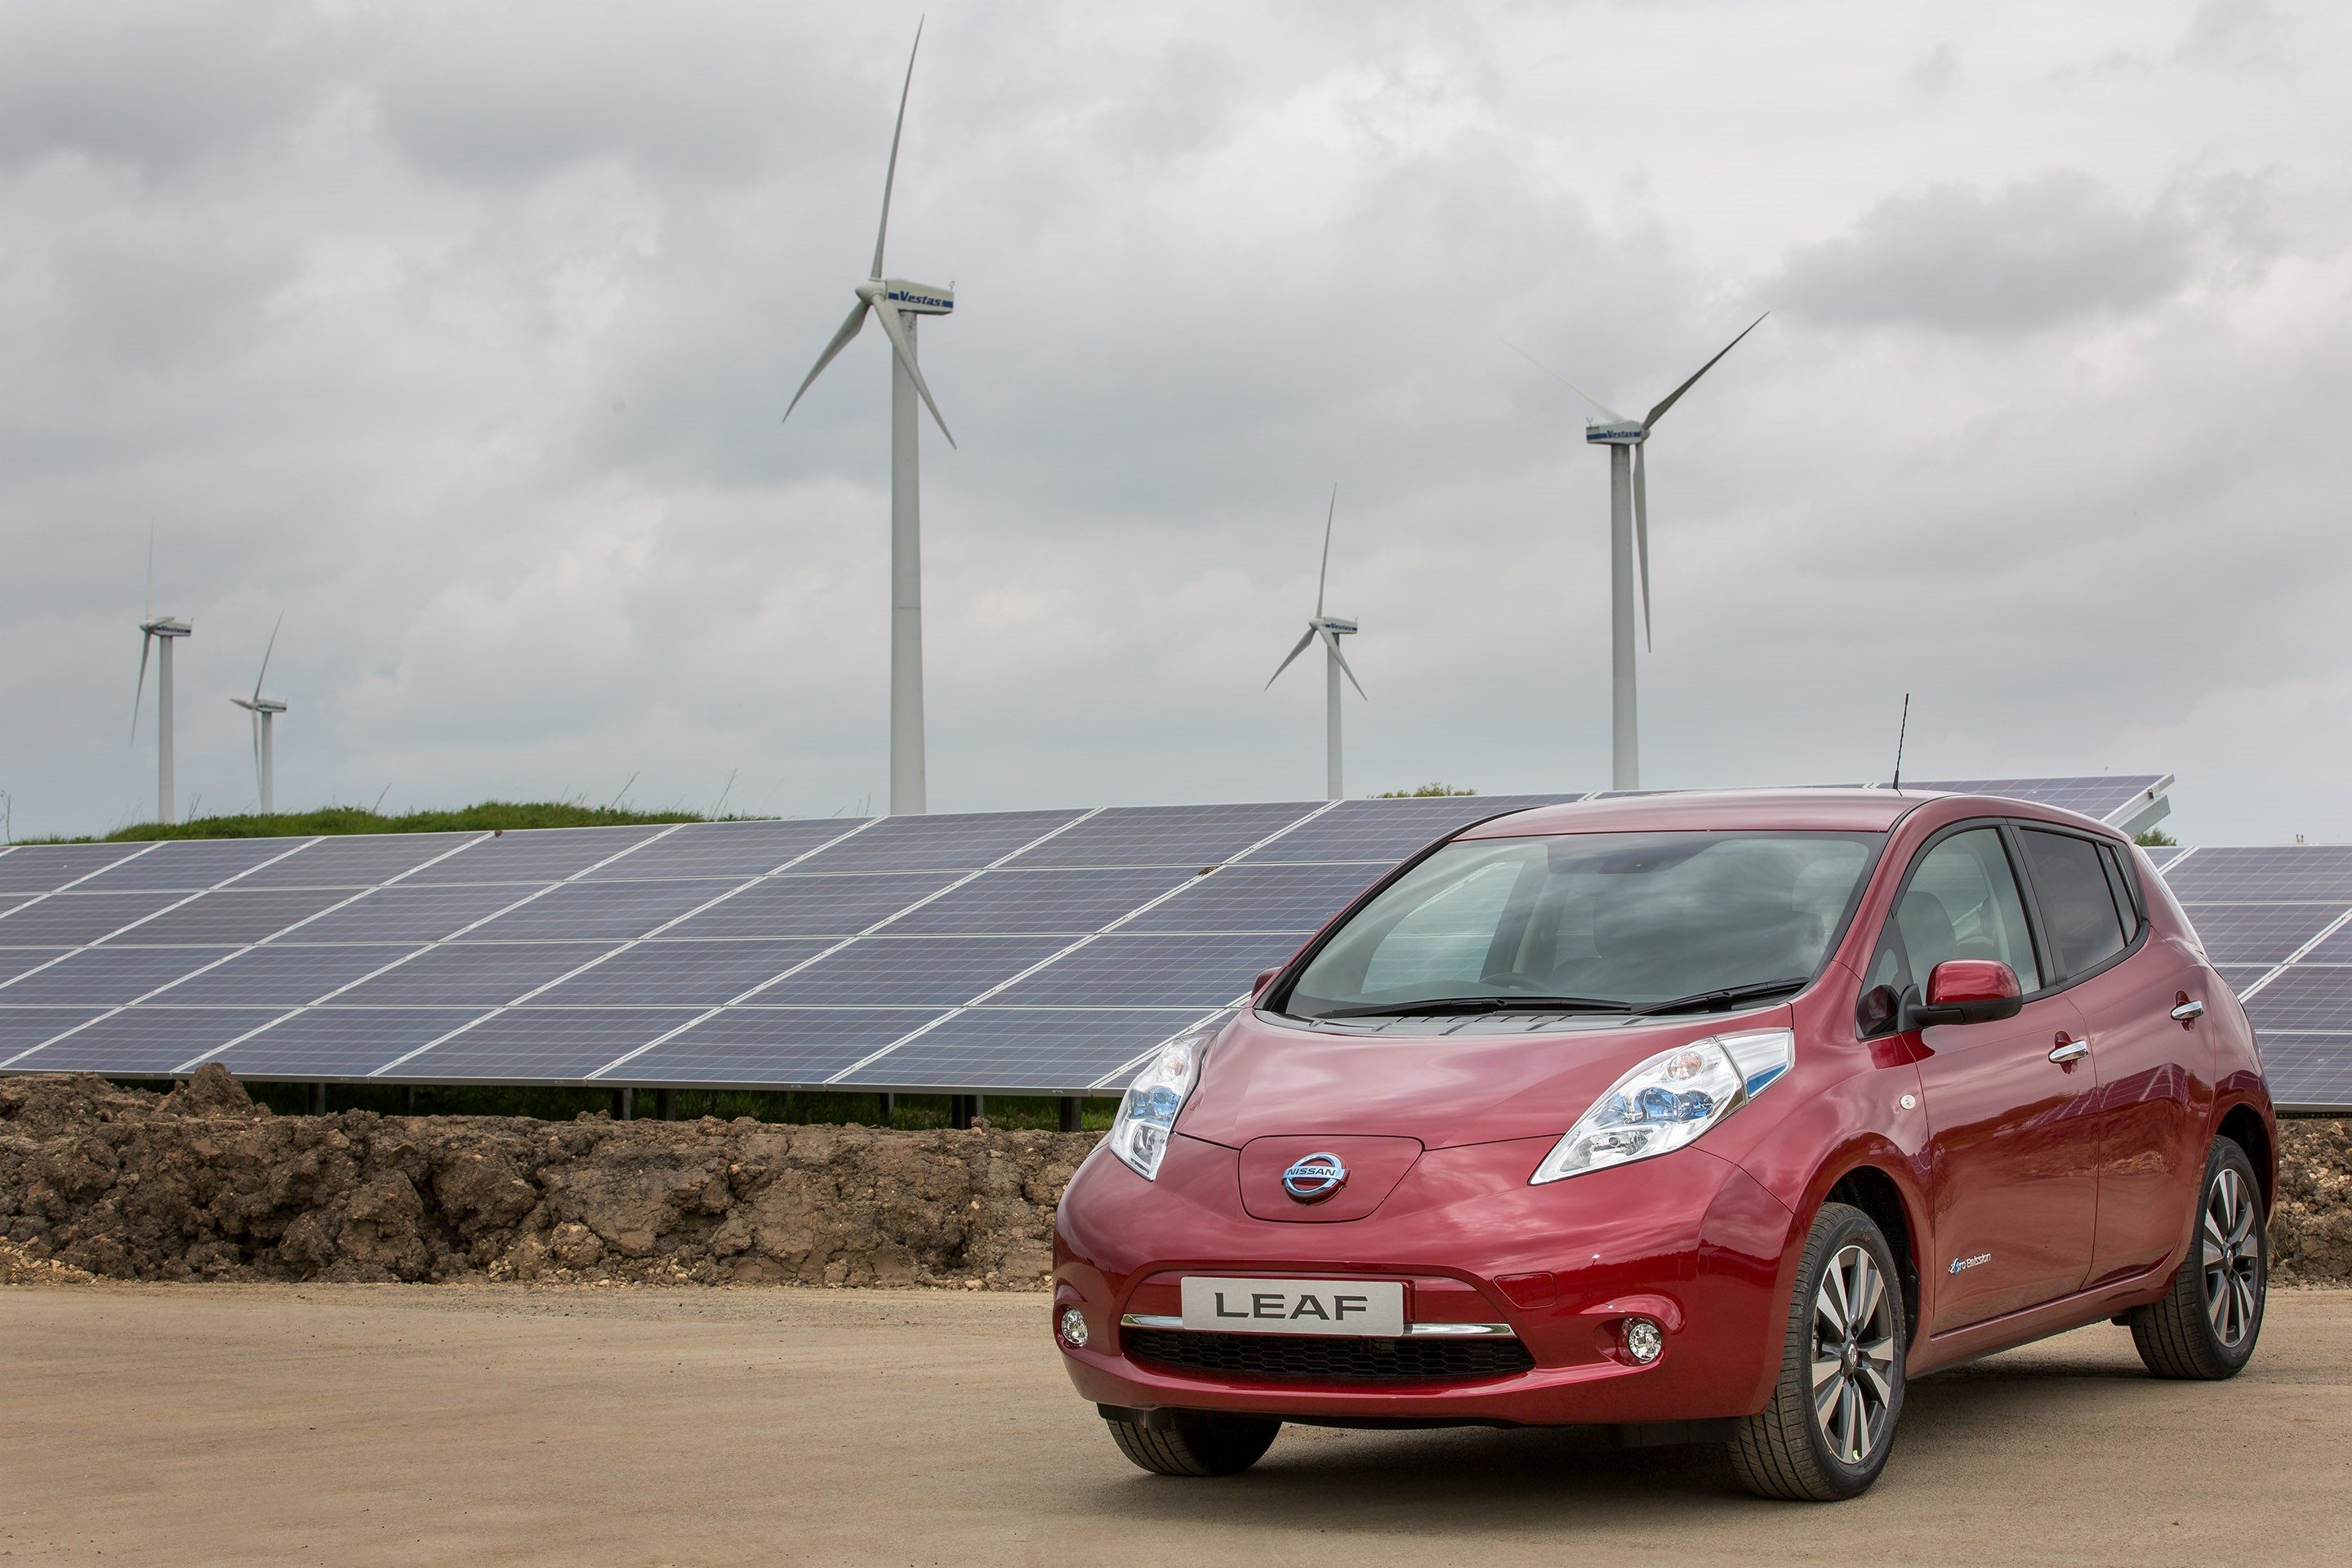 image of a red nissan leaf electric car parked next to solar panels